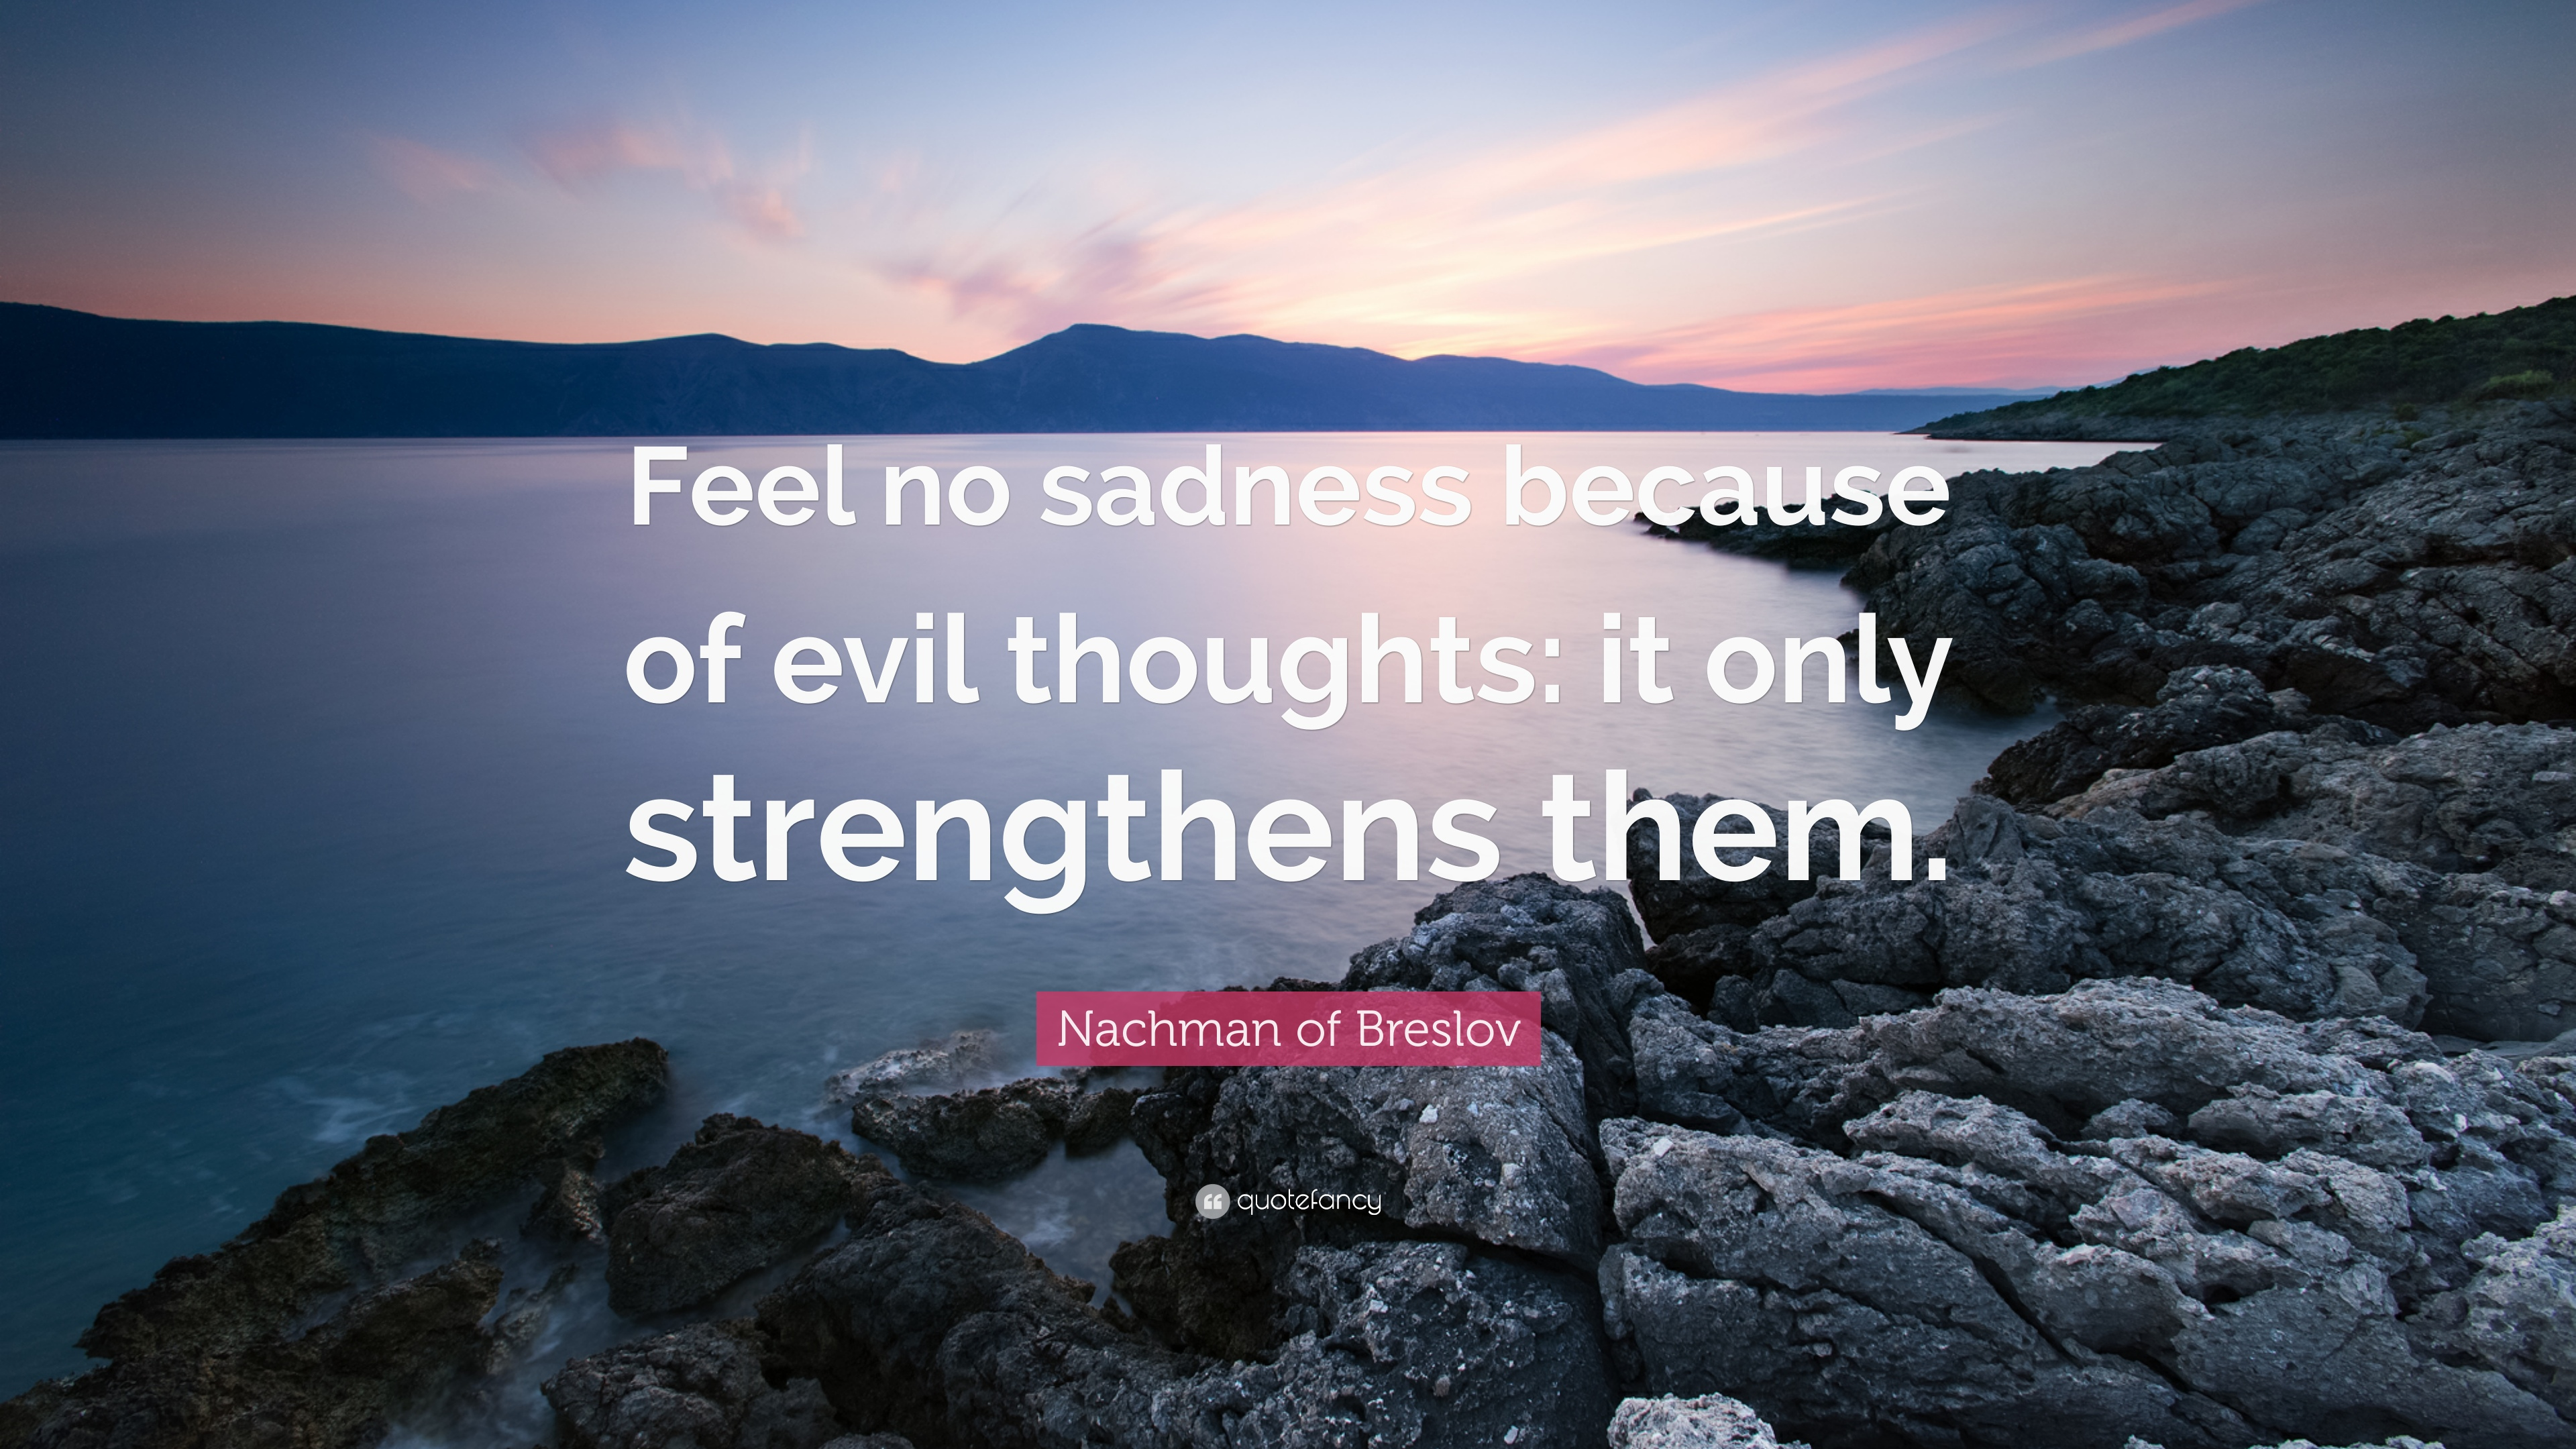 sadness quotes quotefancy